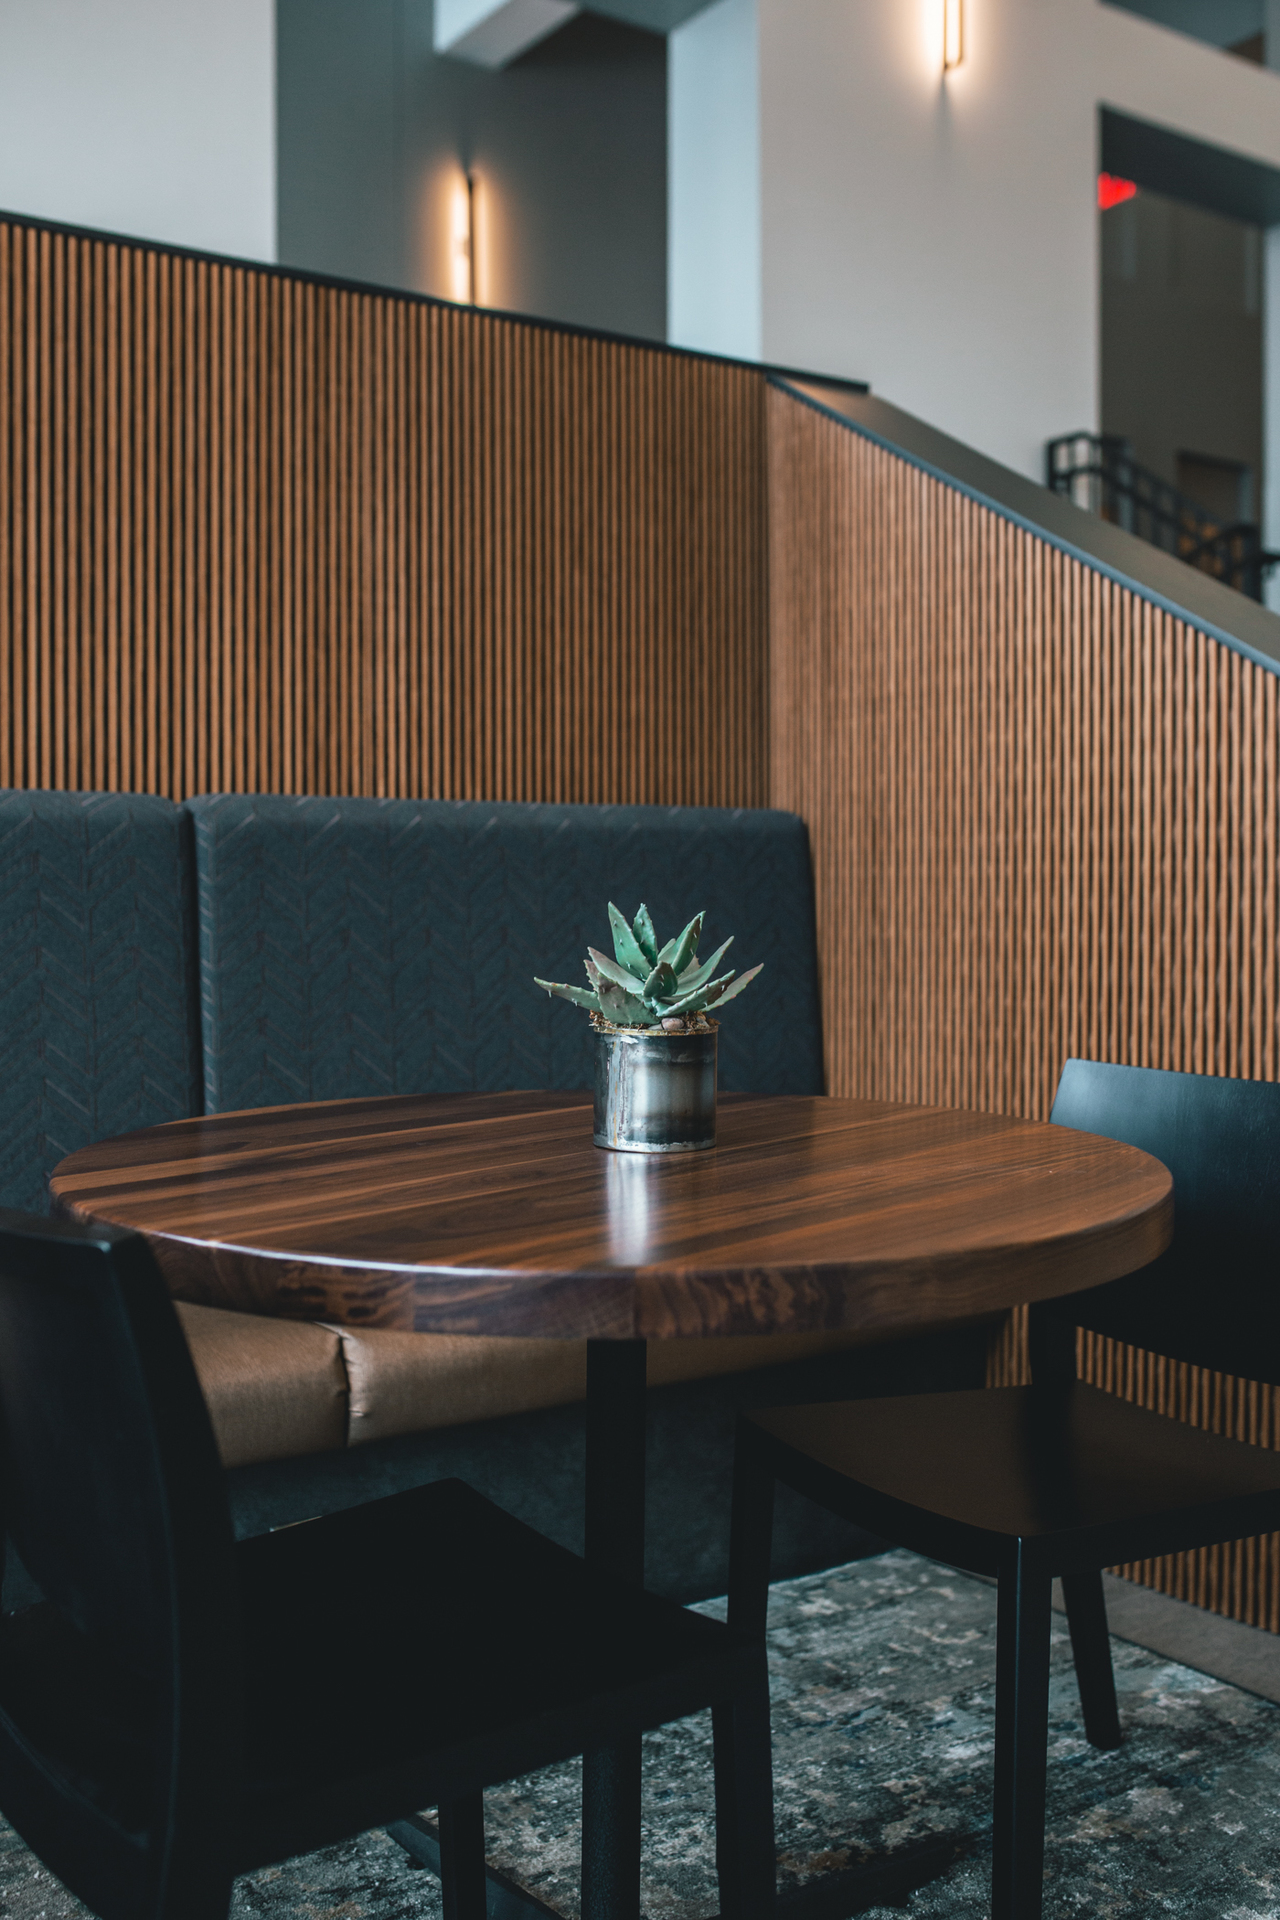 Tables are includes with booth seating and custom chairs to bring the space together.